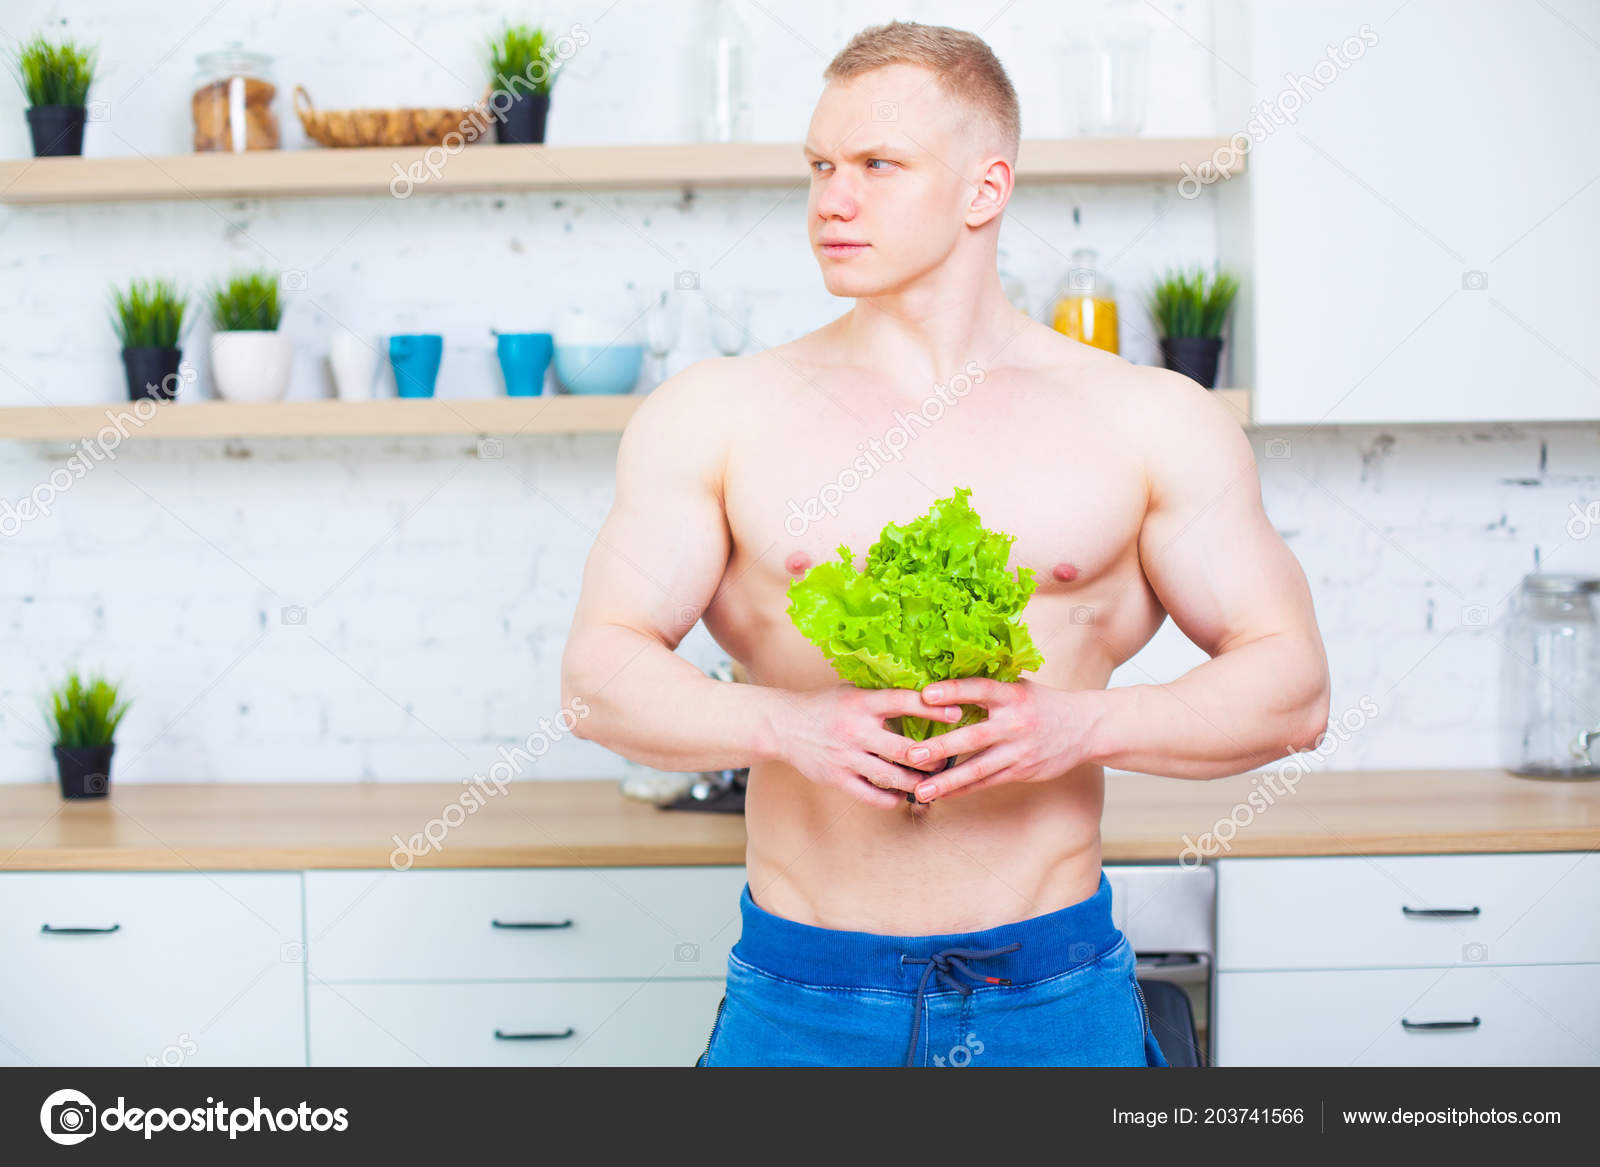 The naked kitchen download